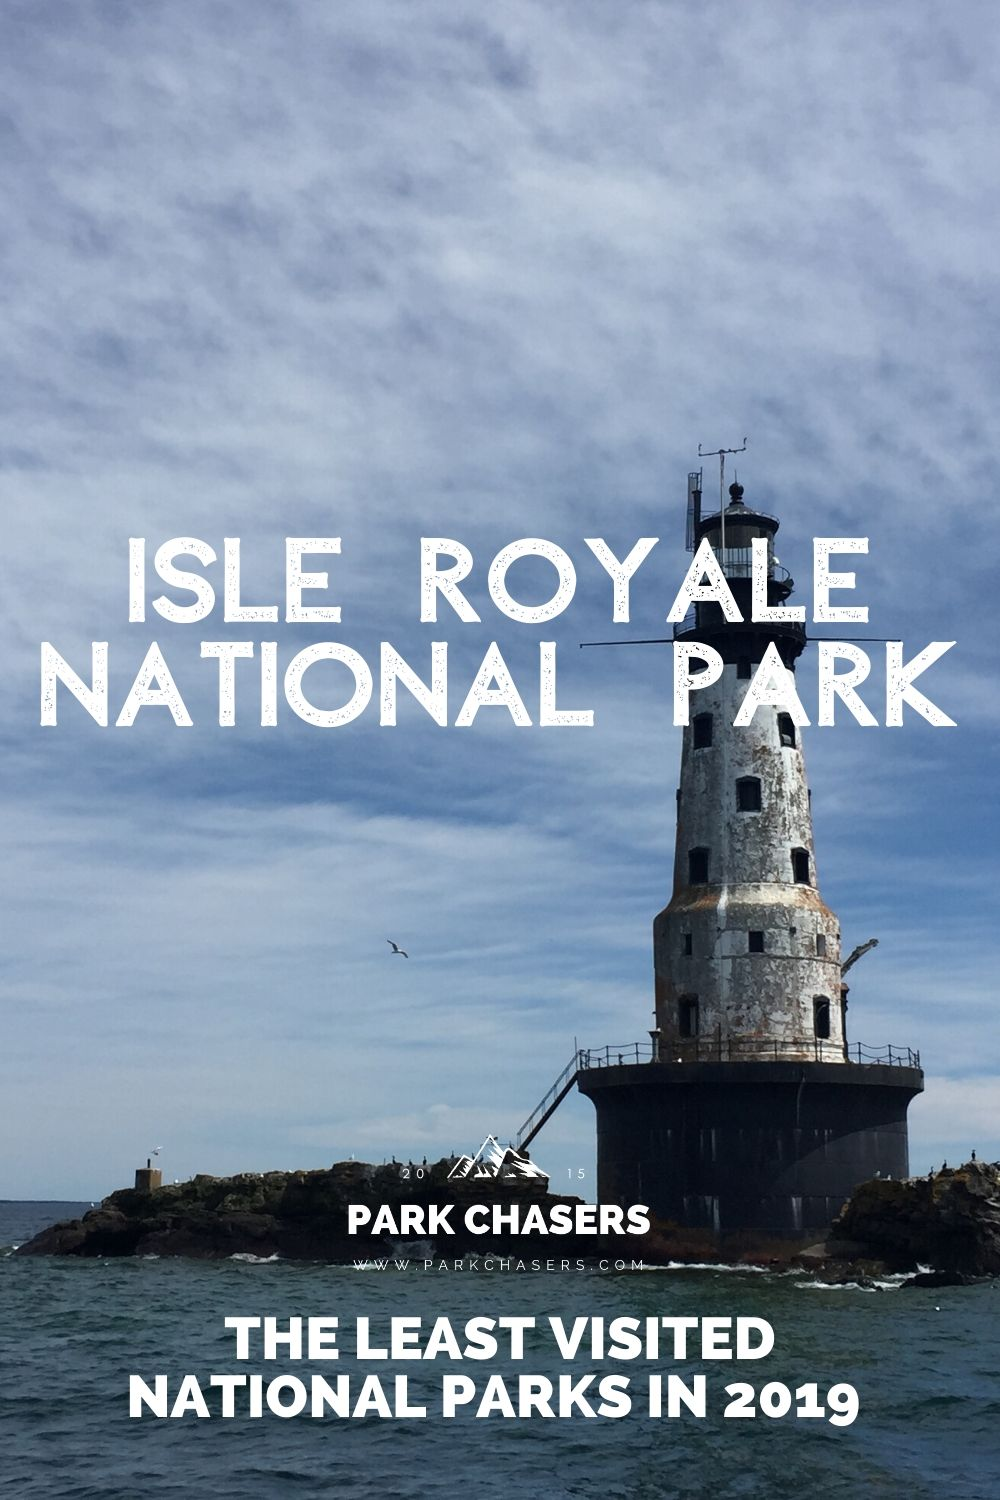 Isle Royale National Park - one of the least visited national parks in 2019